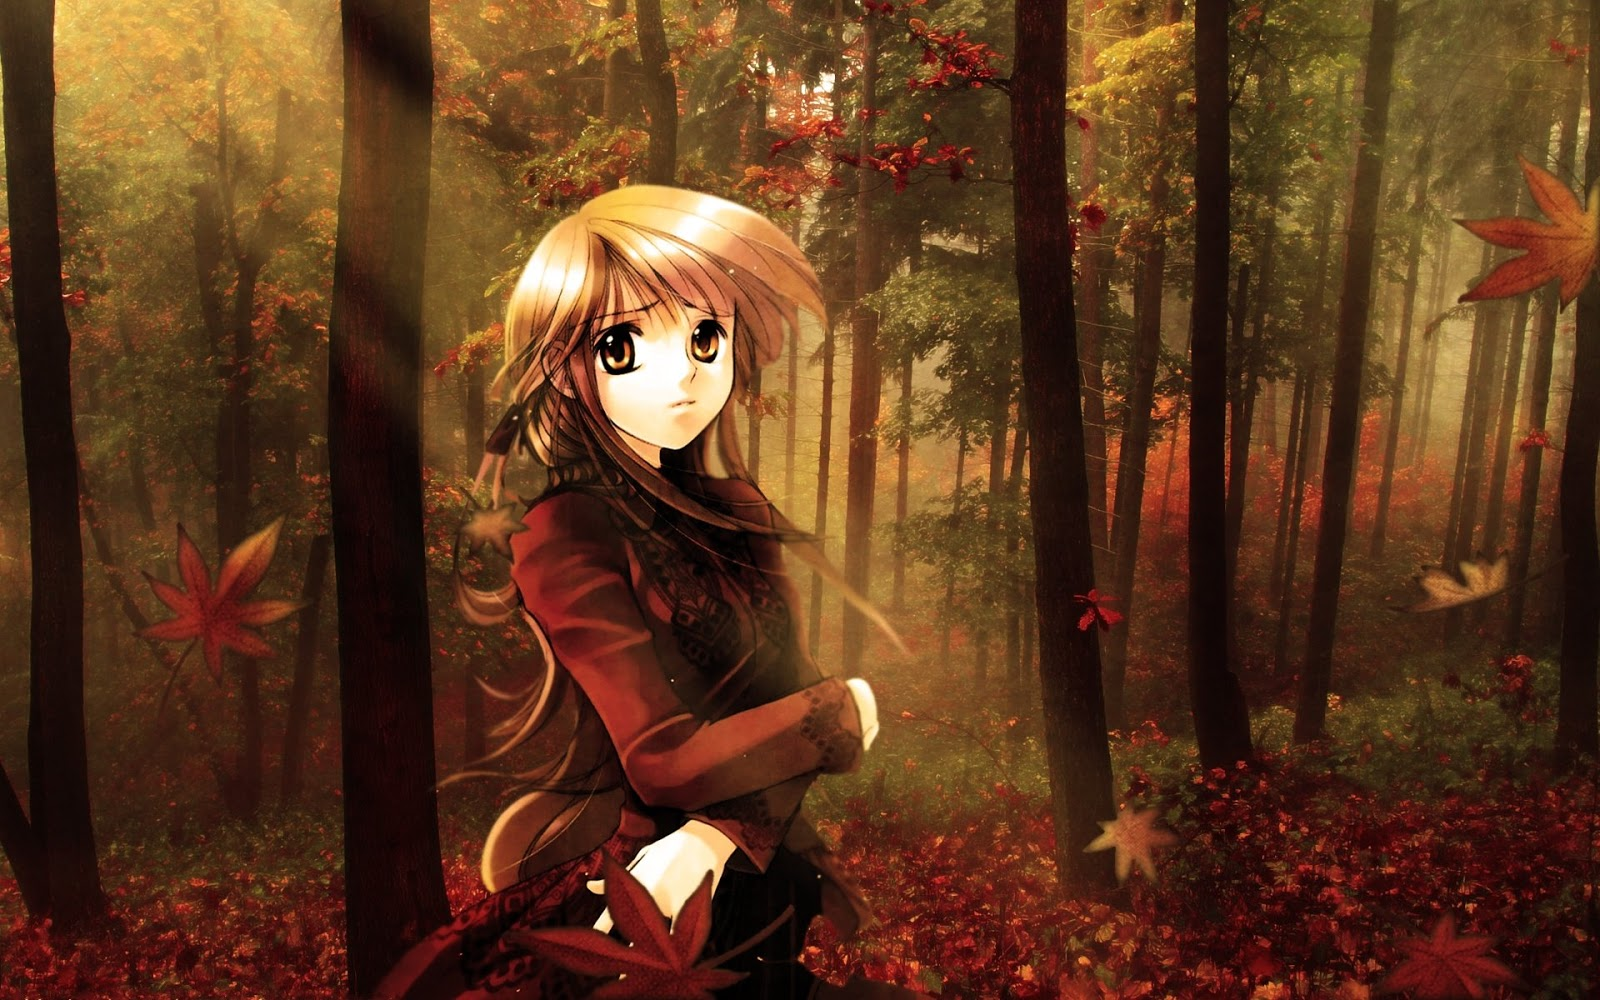 Anime Girl Autumn Fall